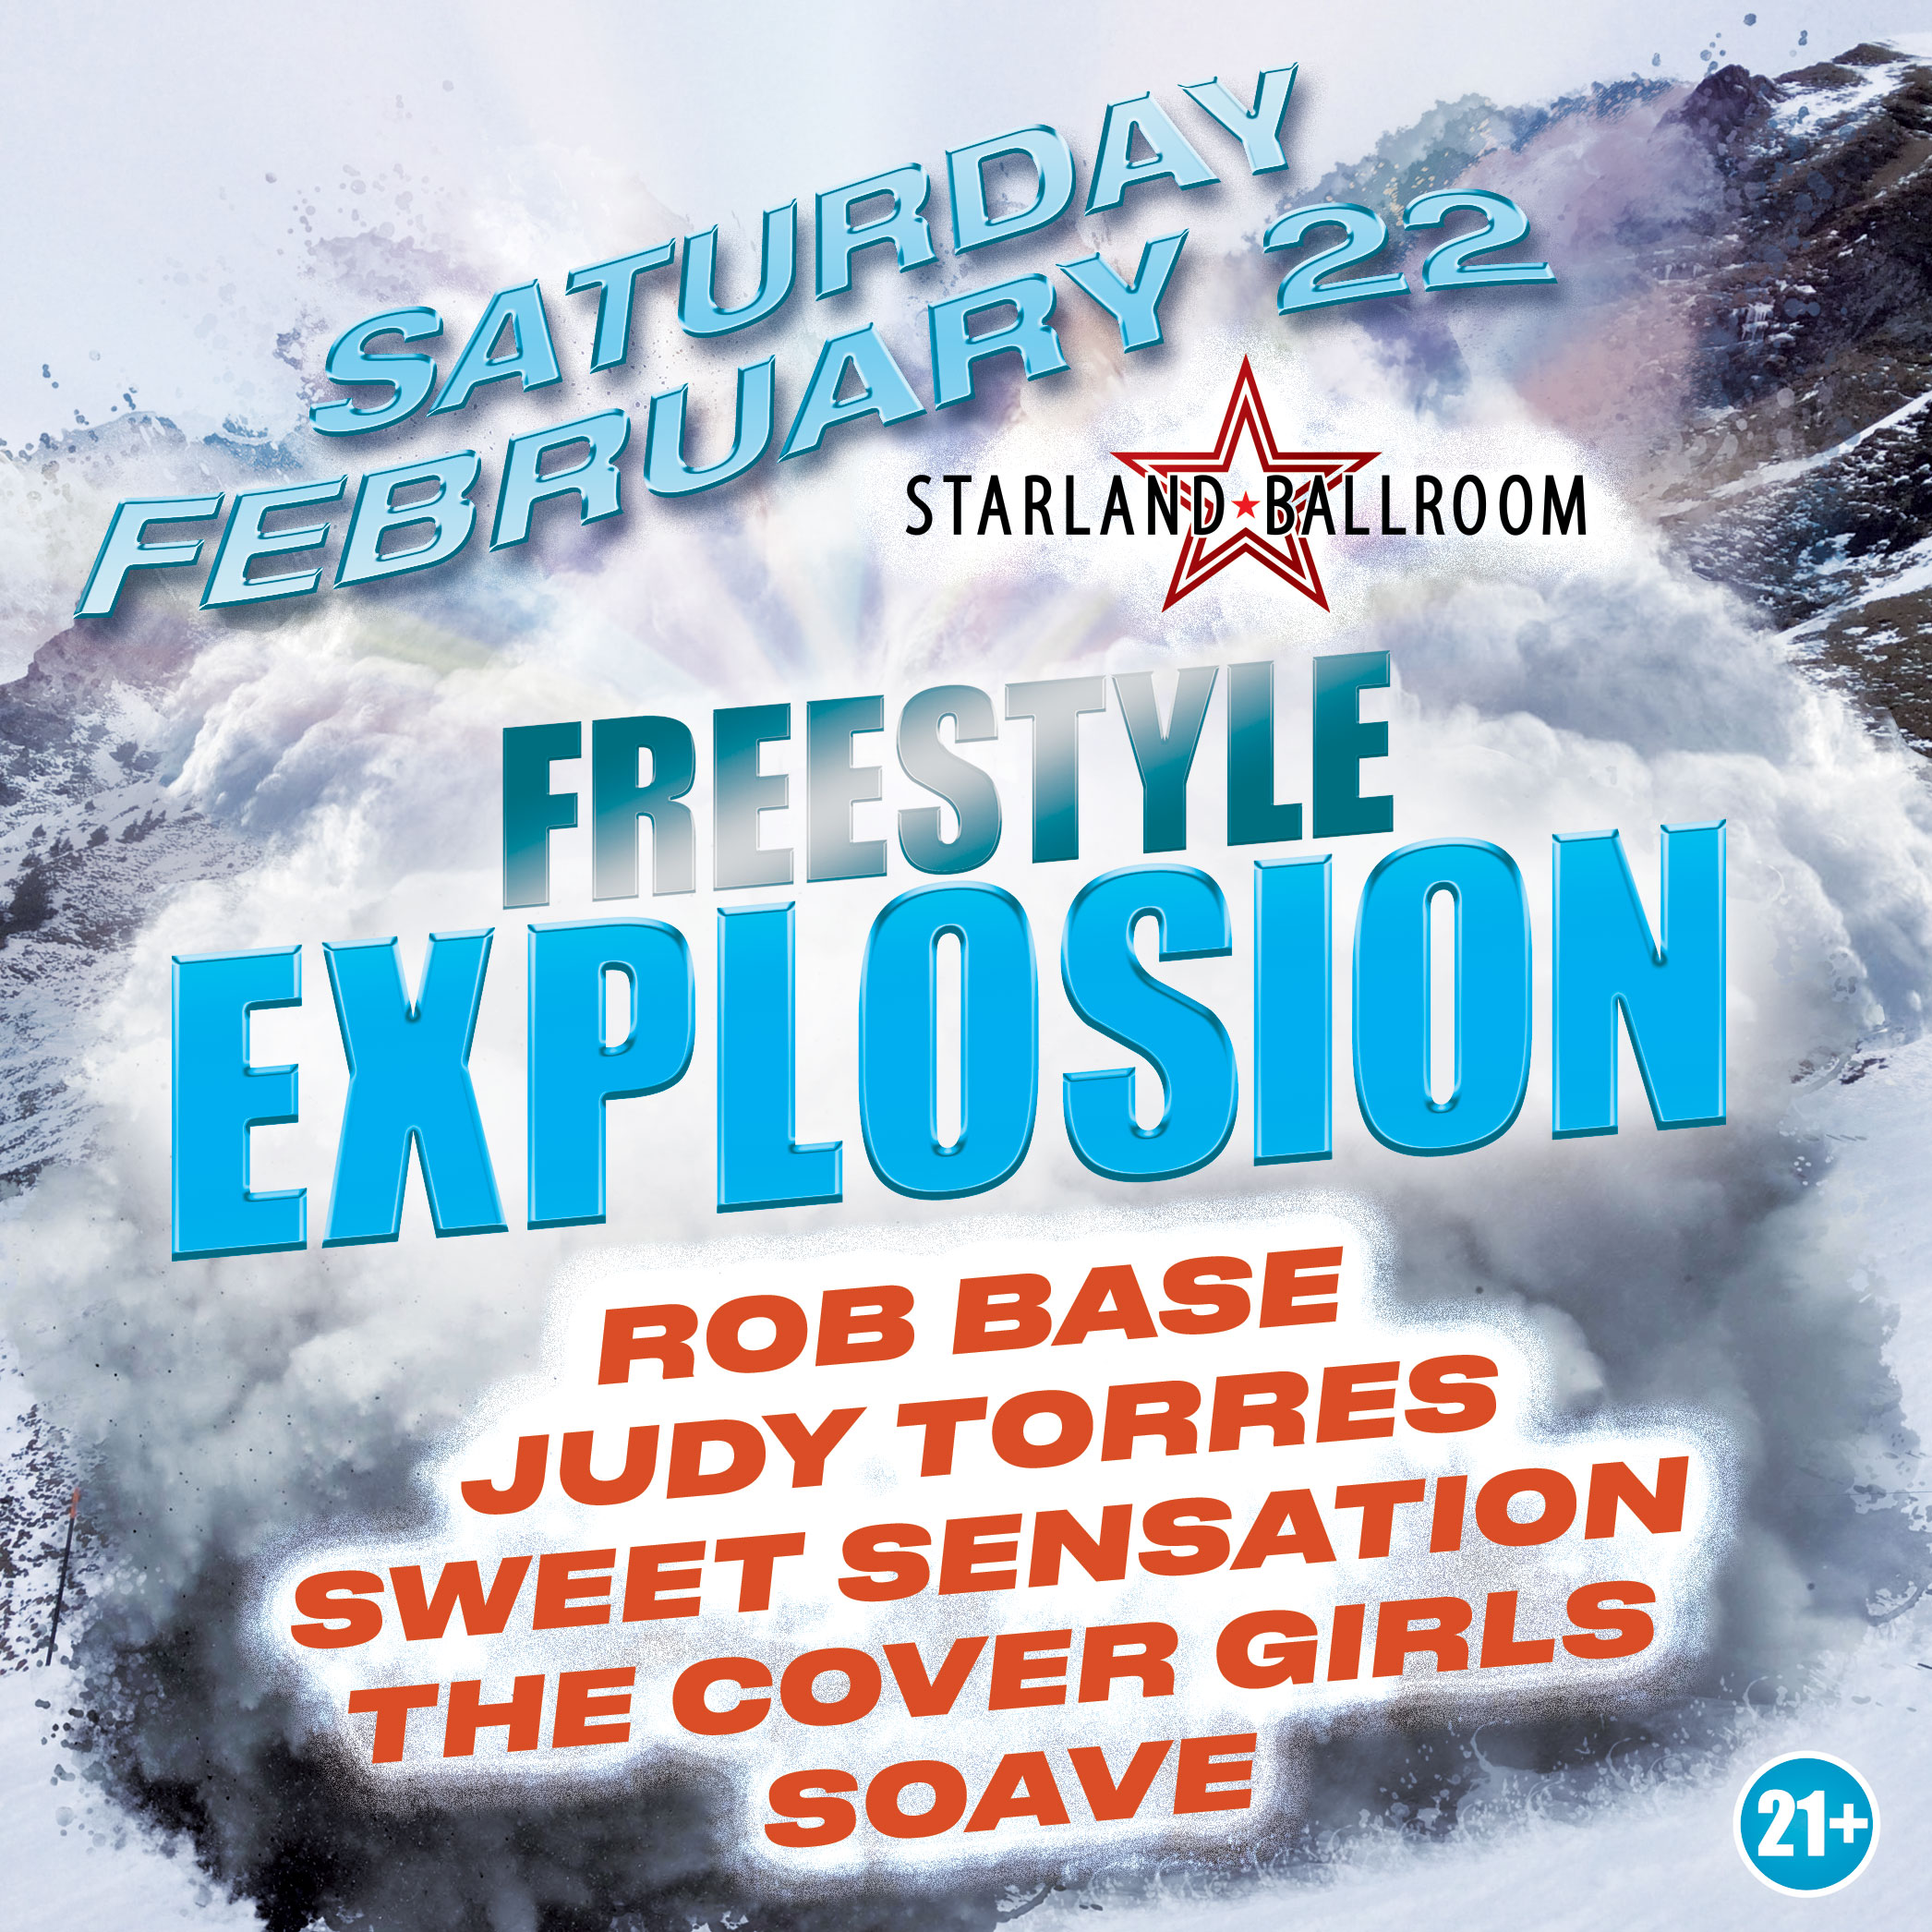 Freestyle Explosion, Saturday February 22nd